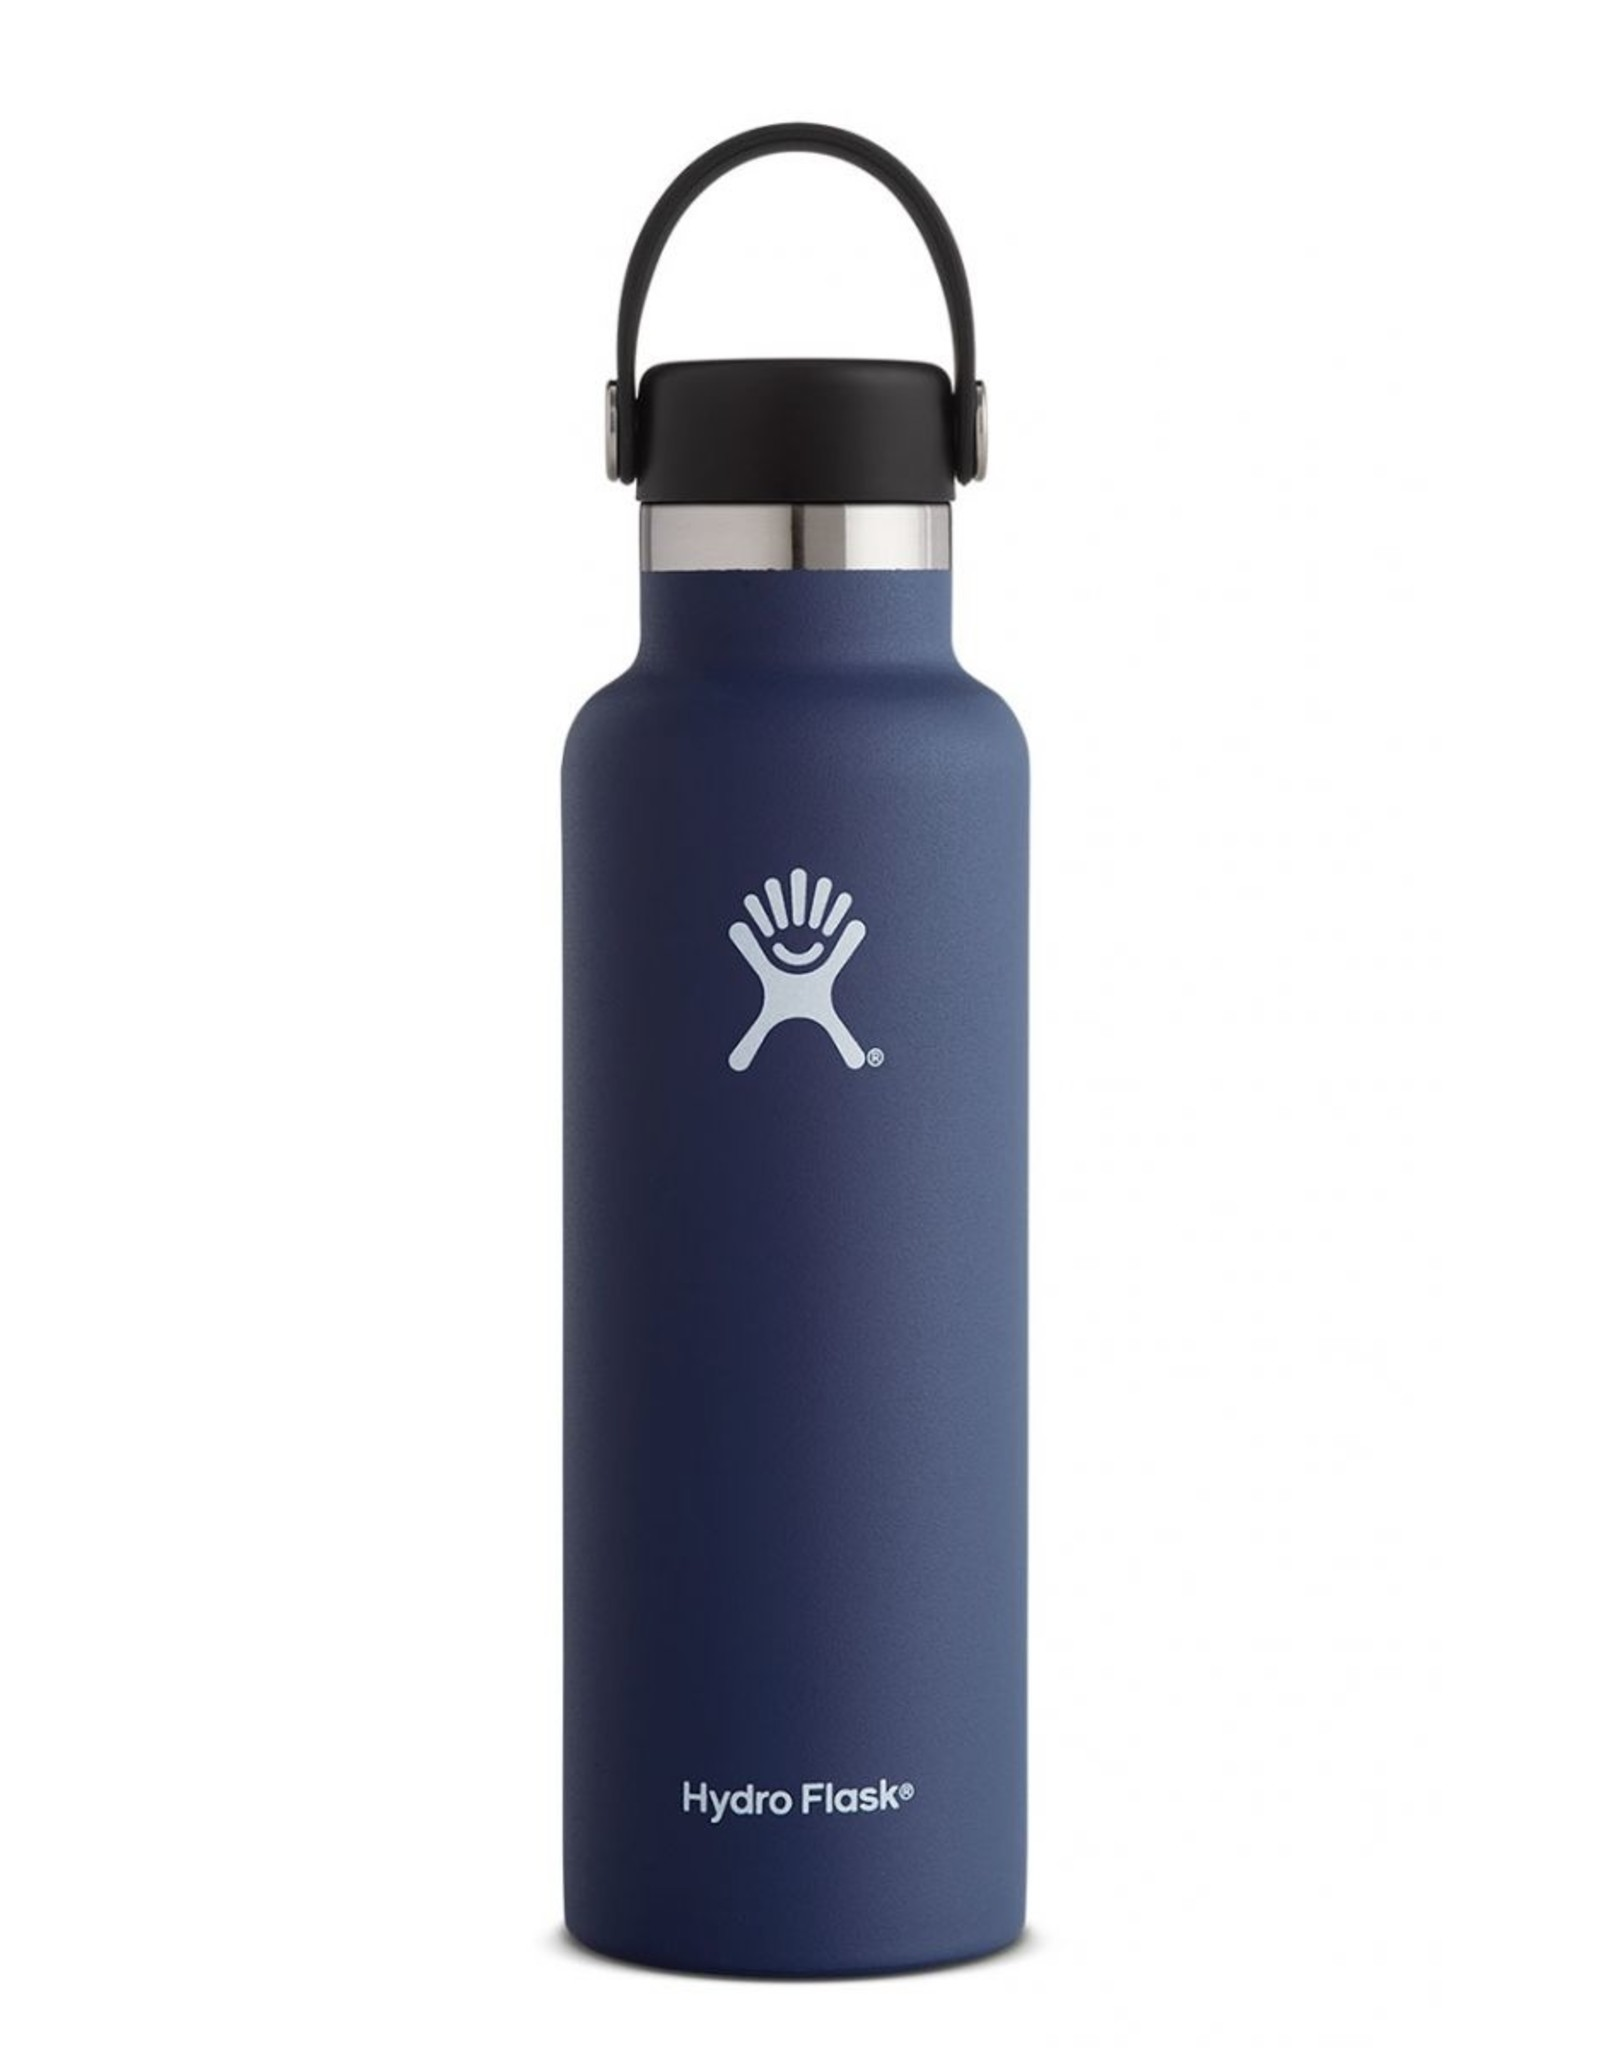 HYDRO FLASK HYDRO FLASK 21OZ STANDARD MOUTH BOTTLE-COBALT